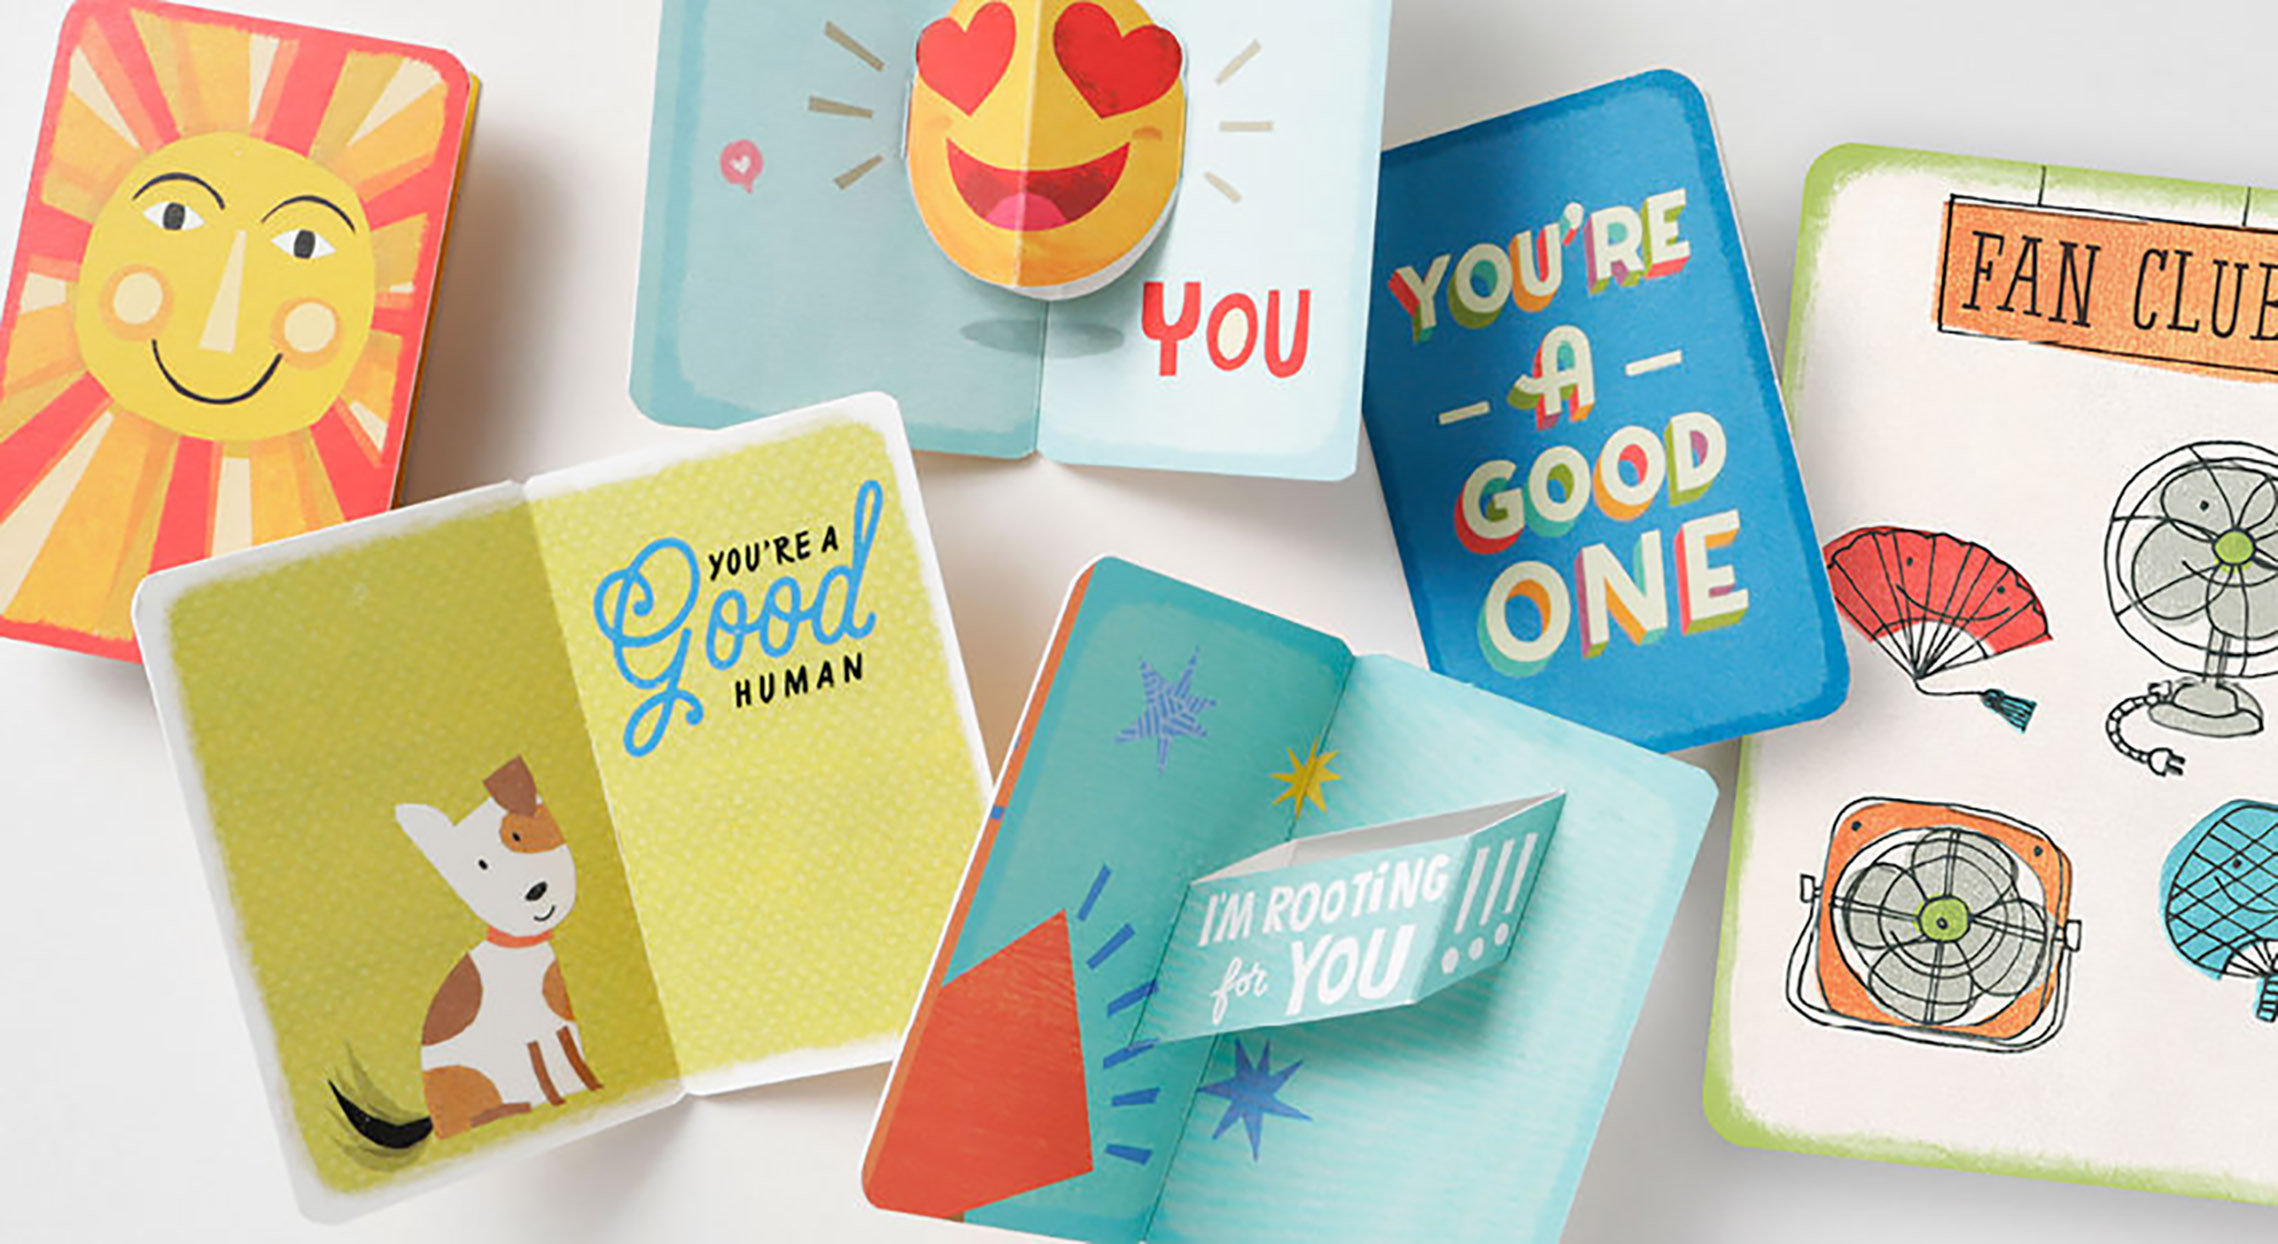 Greeting cards laying on a white tabletop